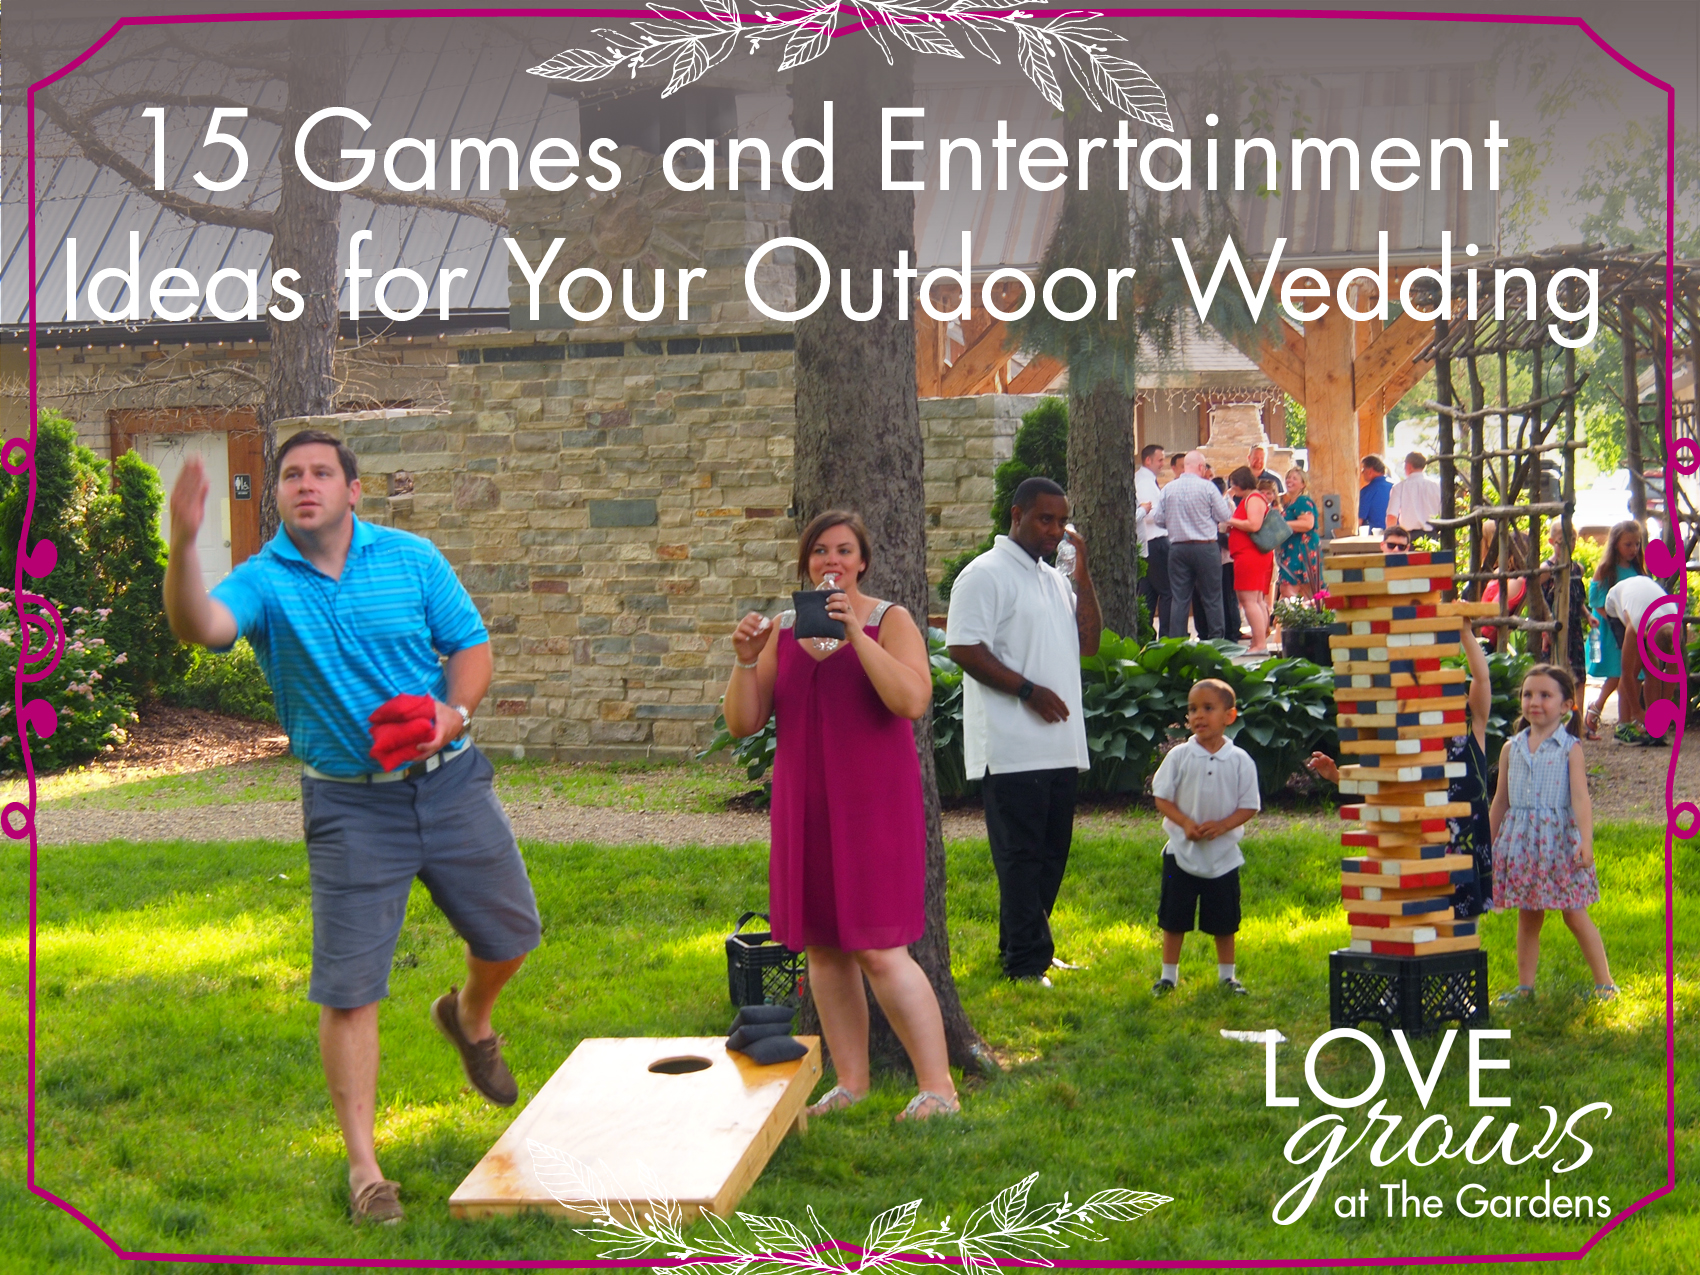 15 Games And Entertainment Ideas For Your Outdoor Wedding